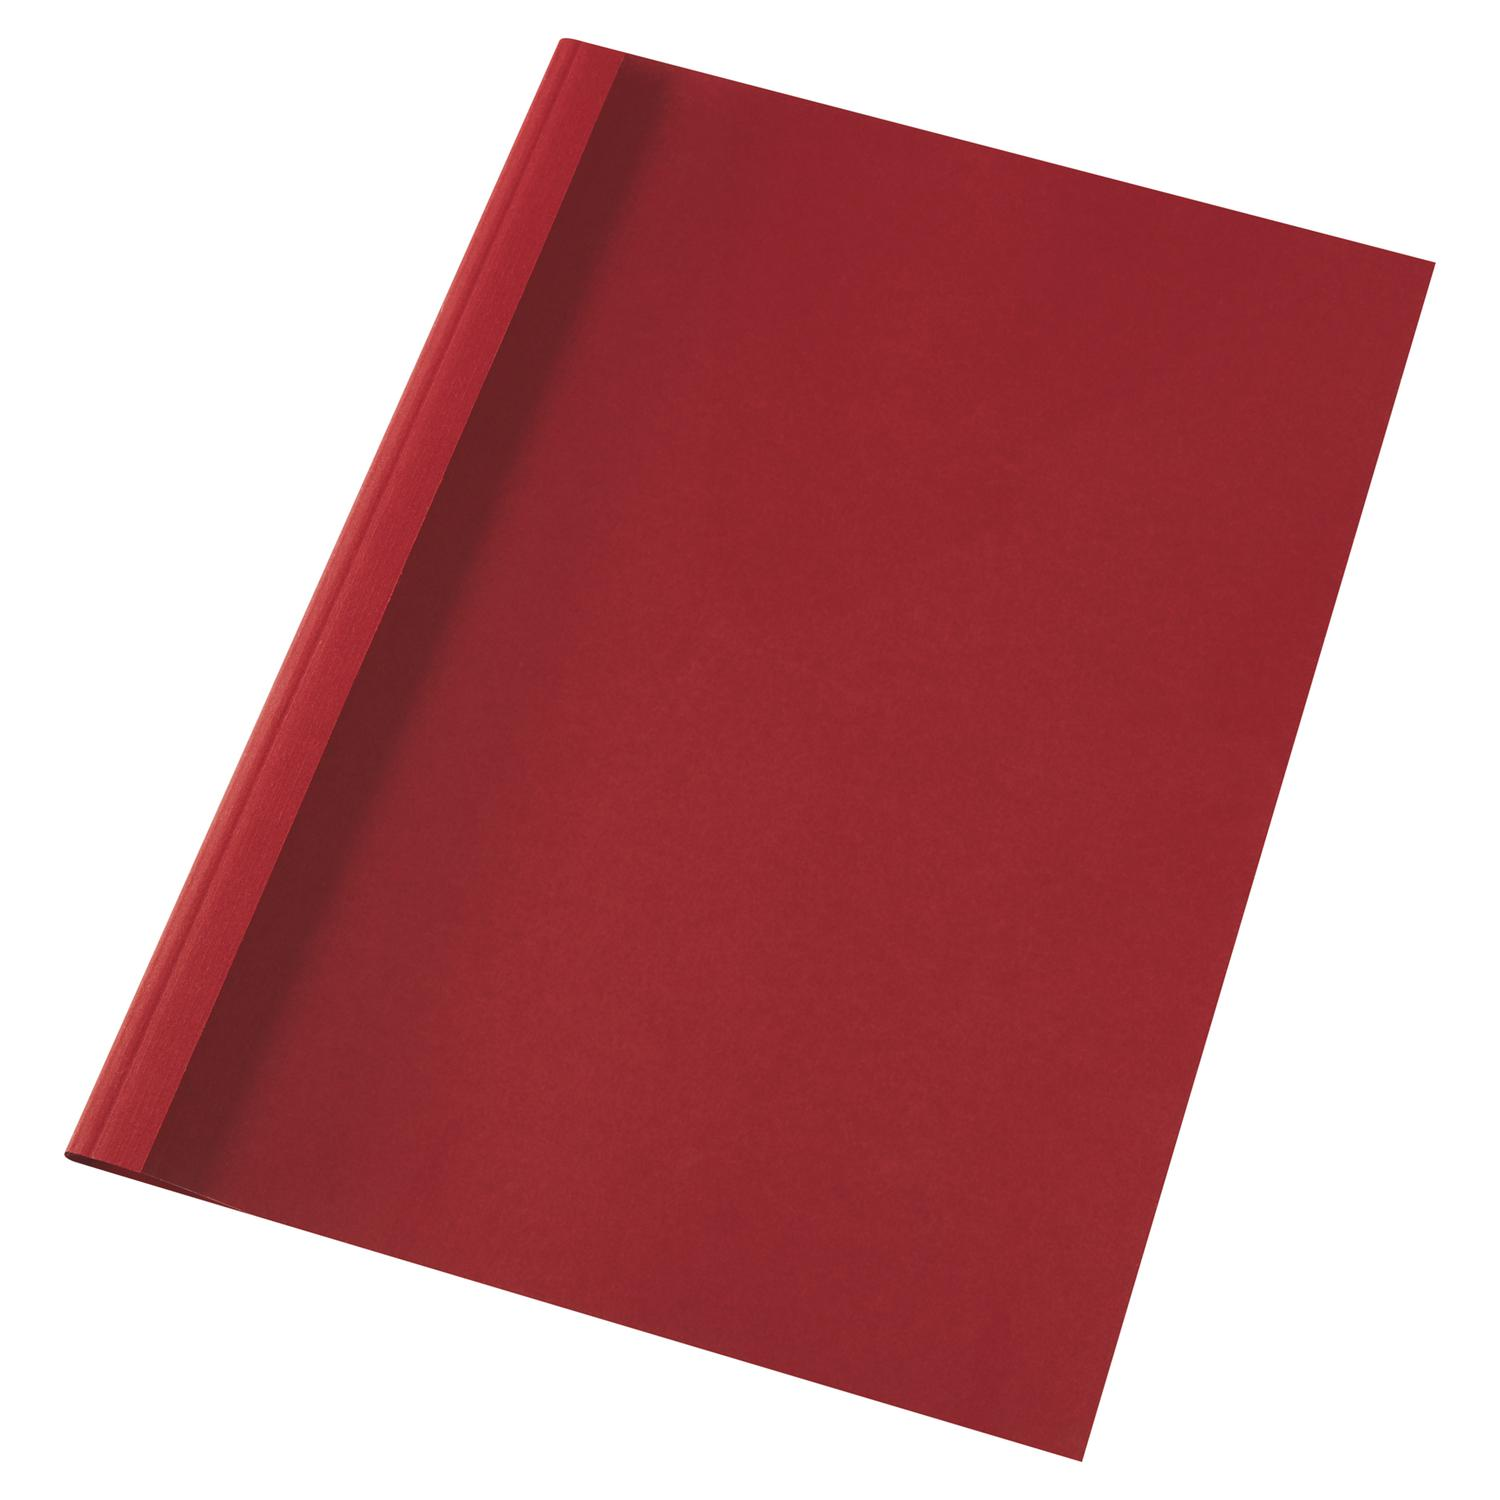 Thermal Bind Covers GBC A4 Thermal Binding Covers 1.5mm Leathergrain Red PK100